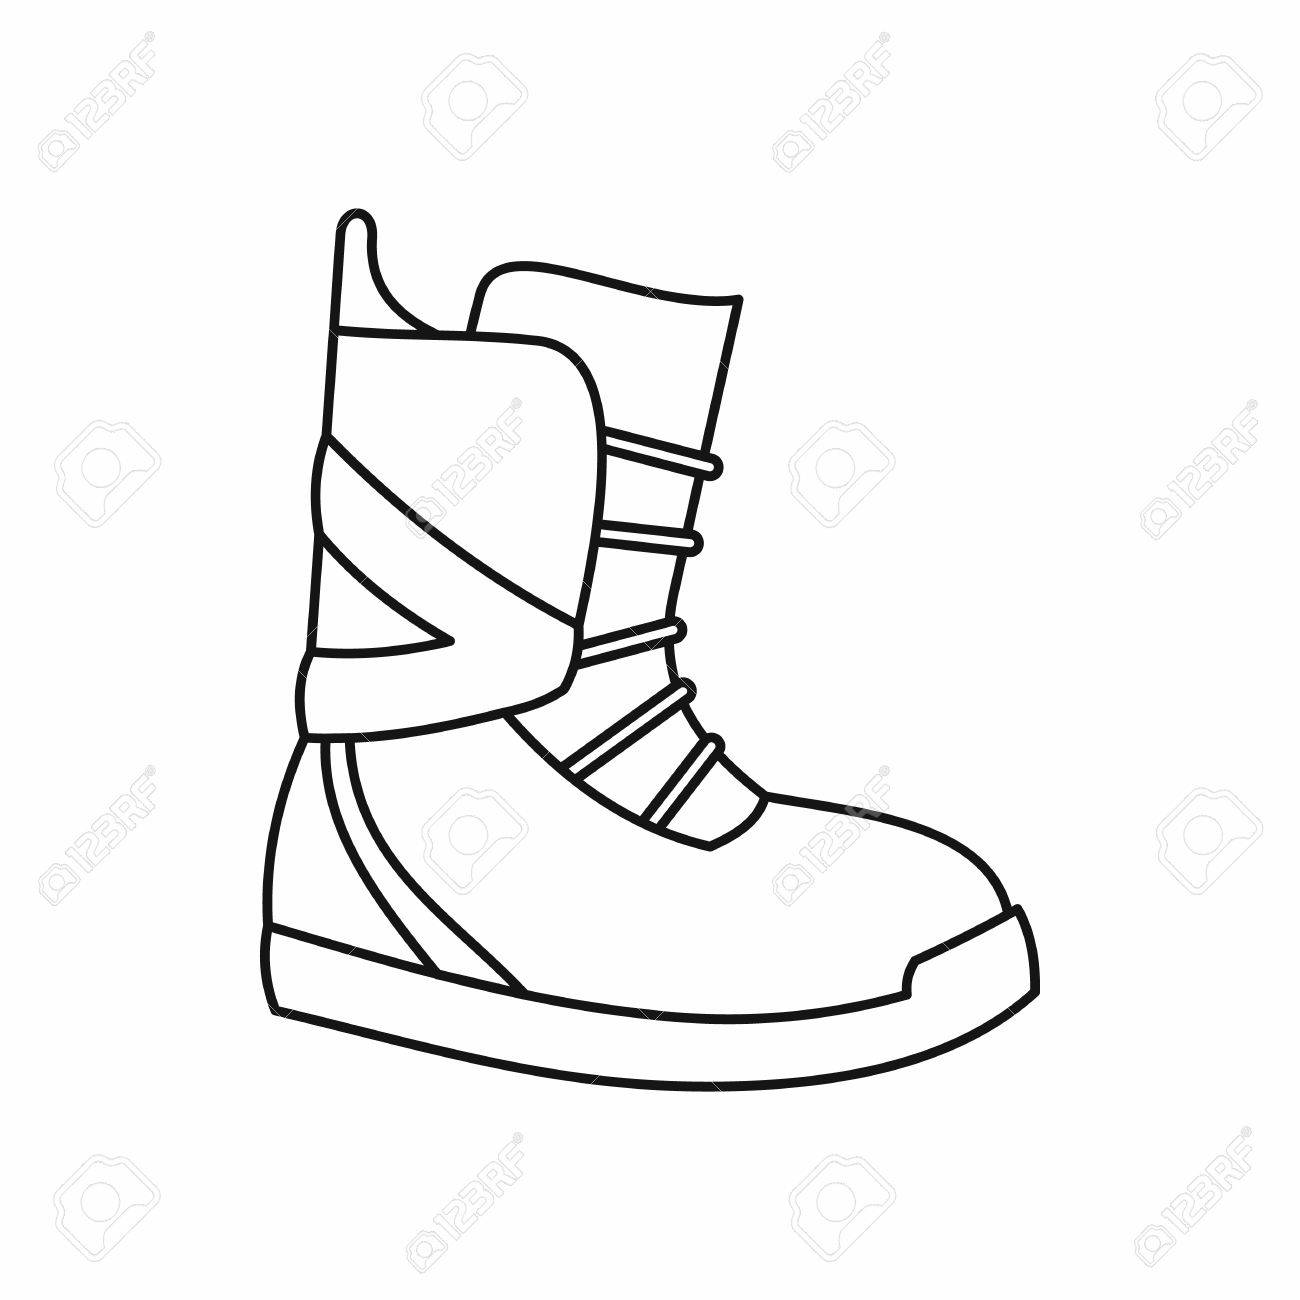 Boot for snowboarding icon in outline style isolated on white..